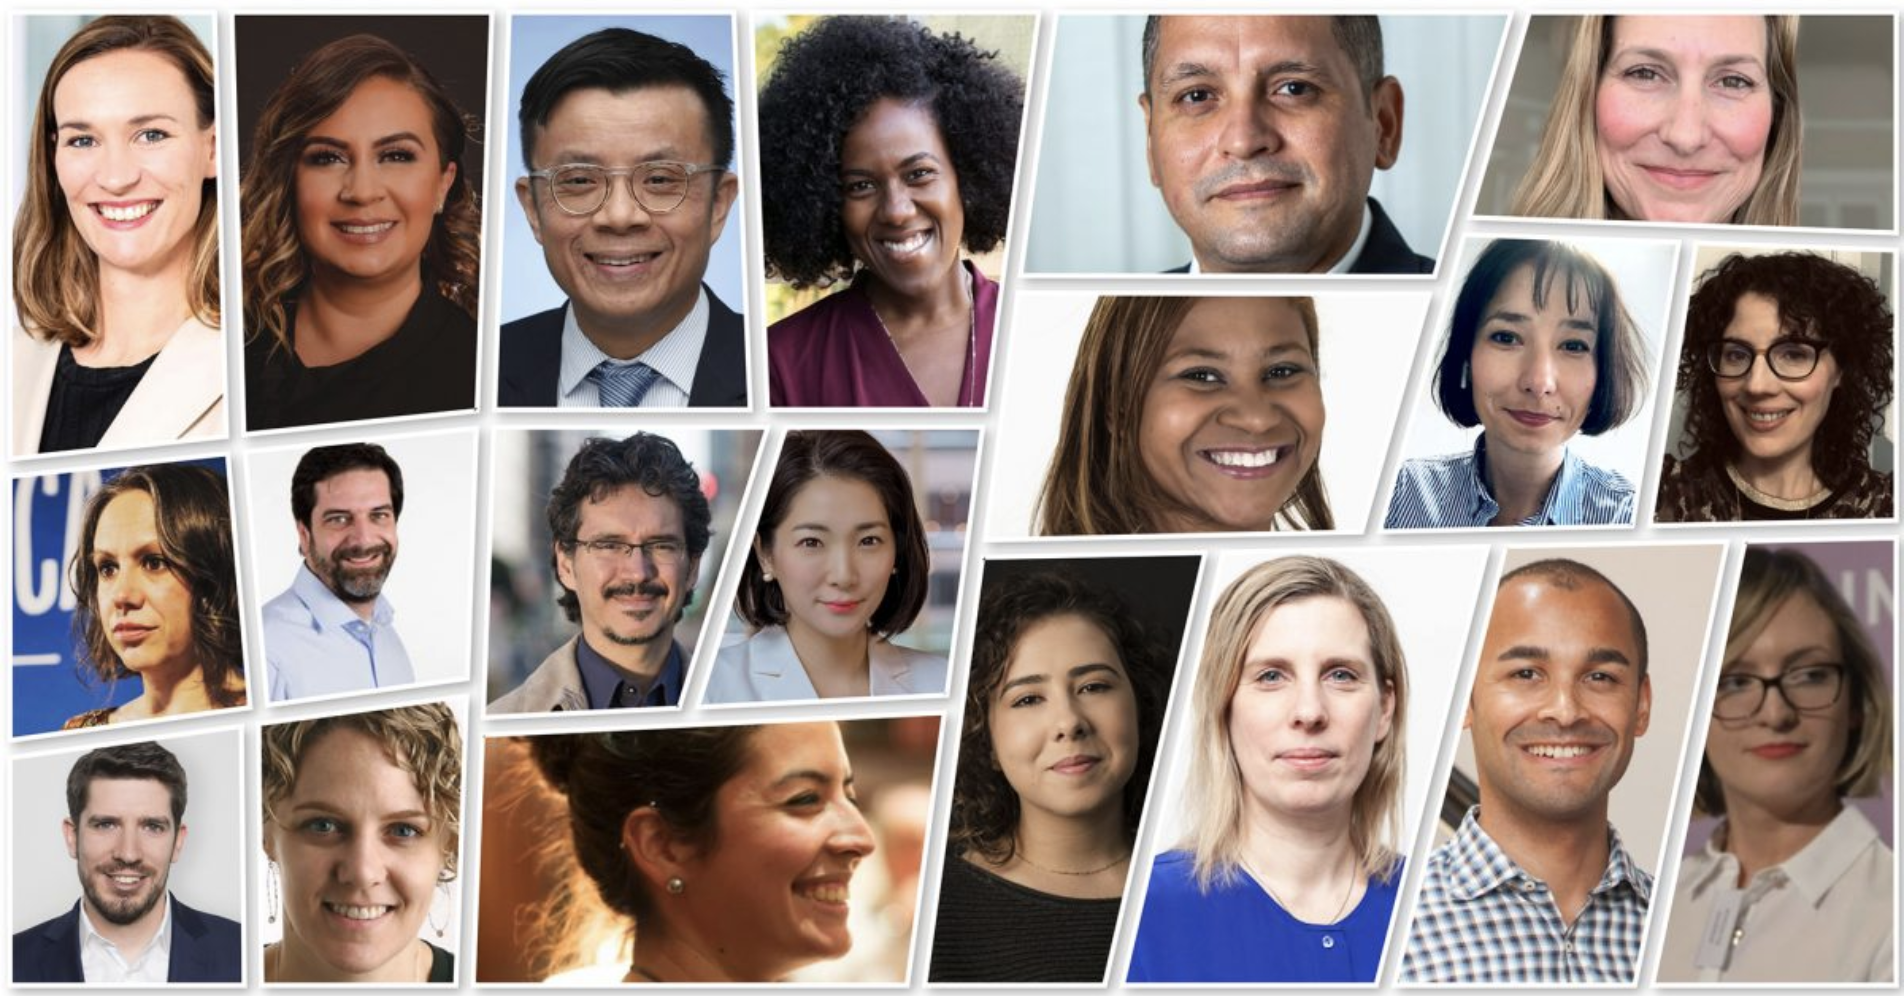 Collage pictures of the 2022 Executive Program cohort